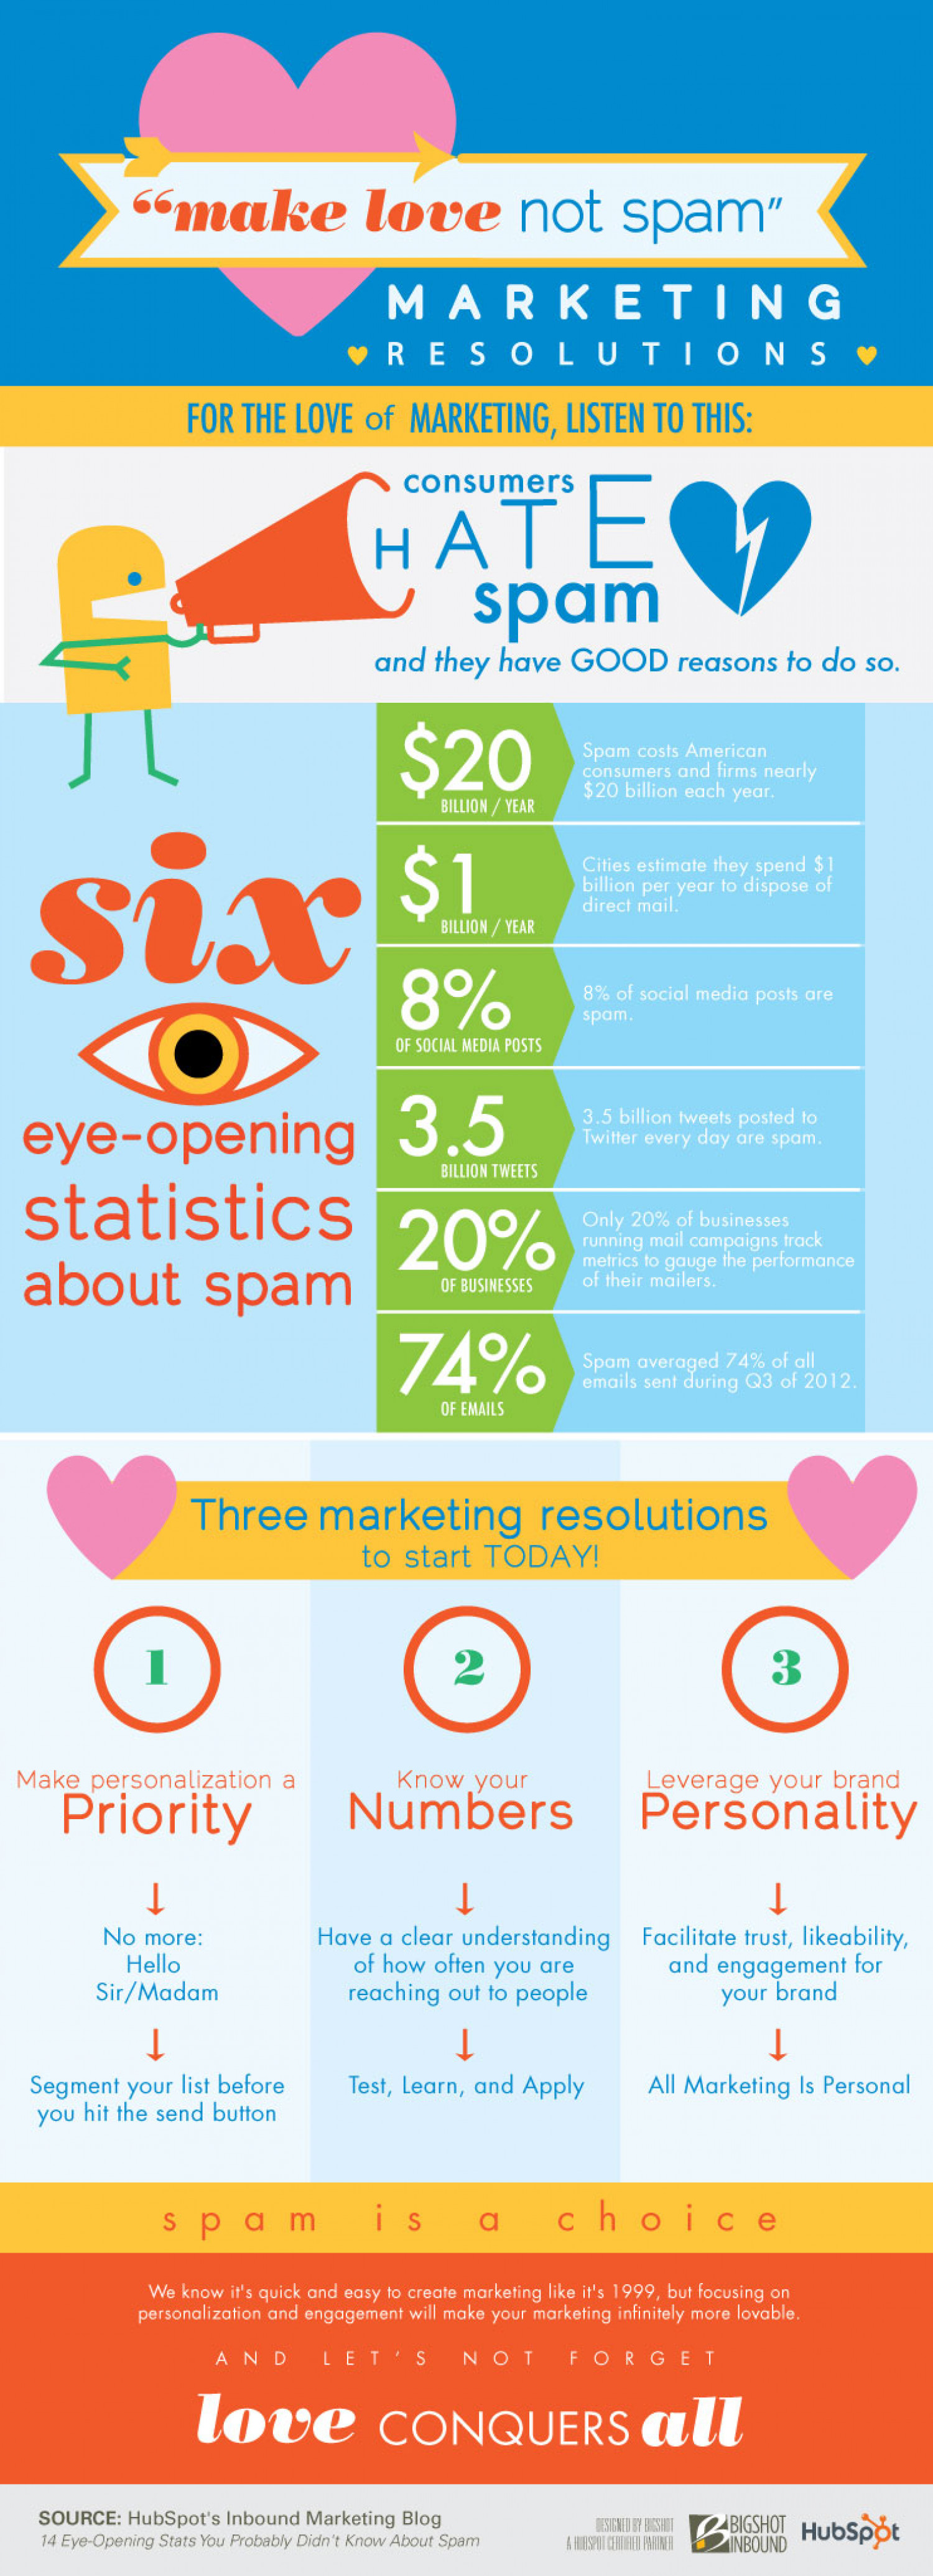 Make love not spam Infographic